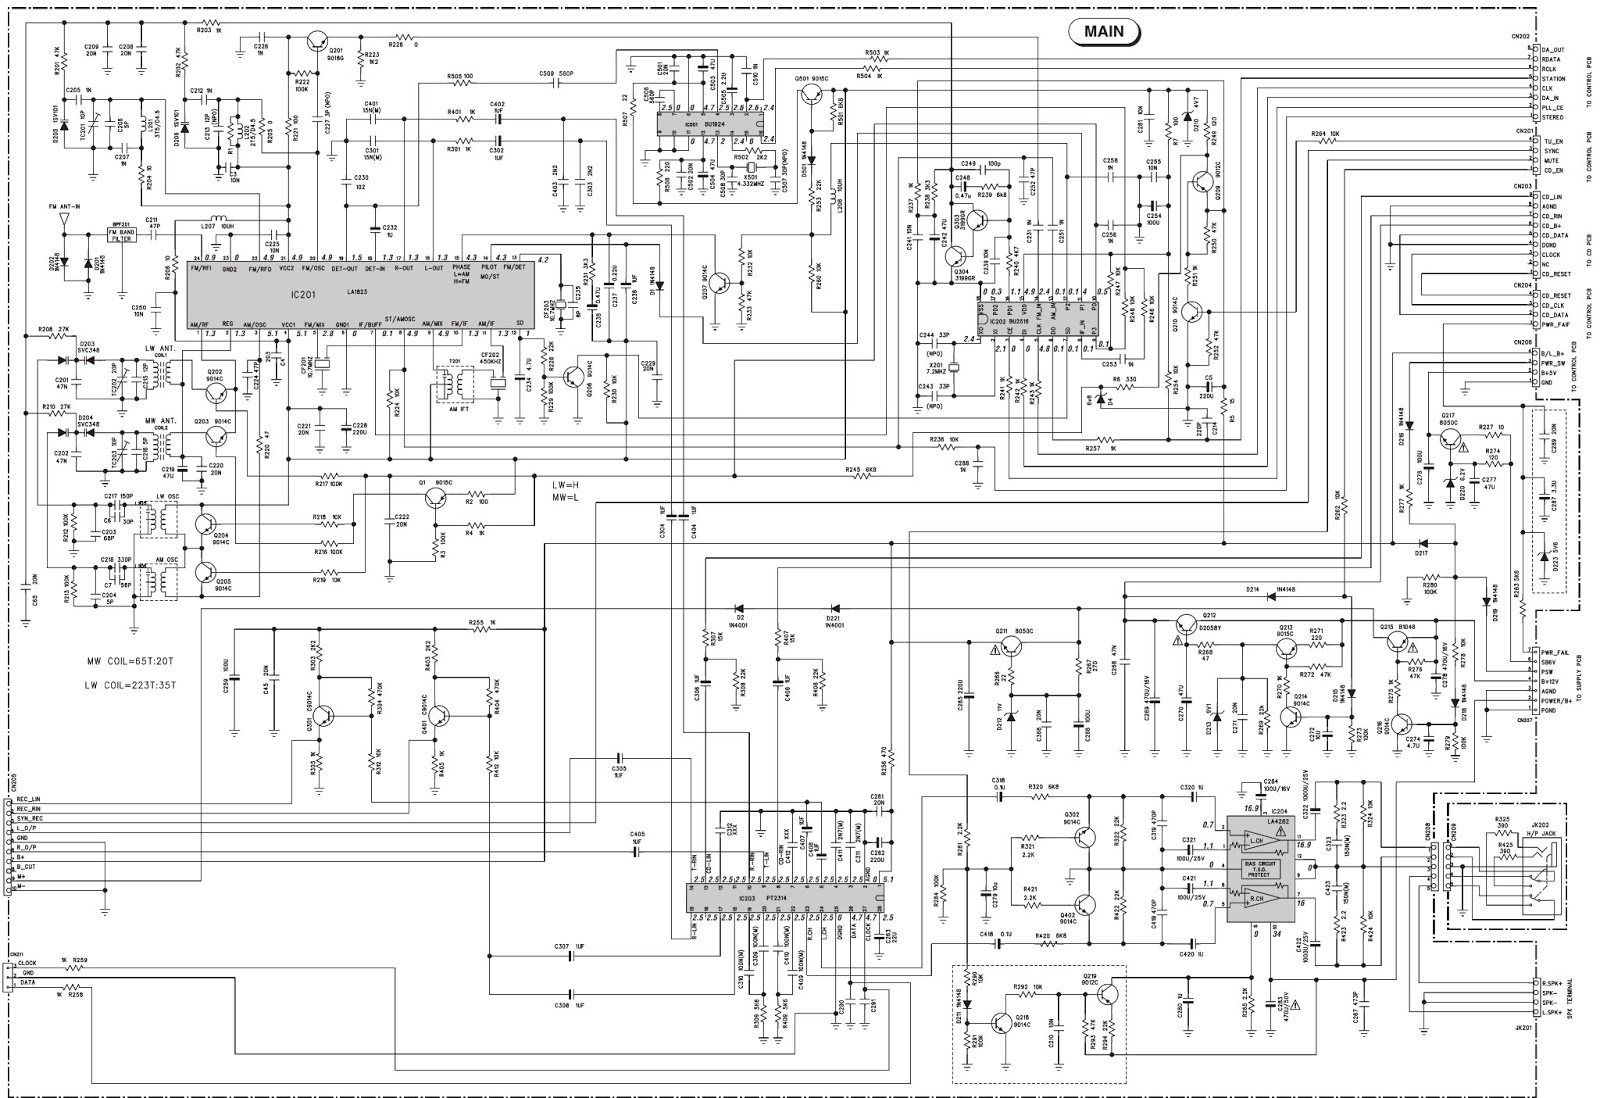 yamaha+amp+section.bmp yamaha _ thomson cs 100 cs 105 schematic diagram [circuit yamaha schematic diagram at eliteediting.co